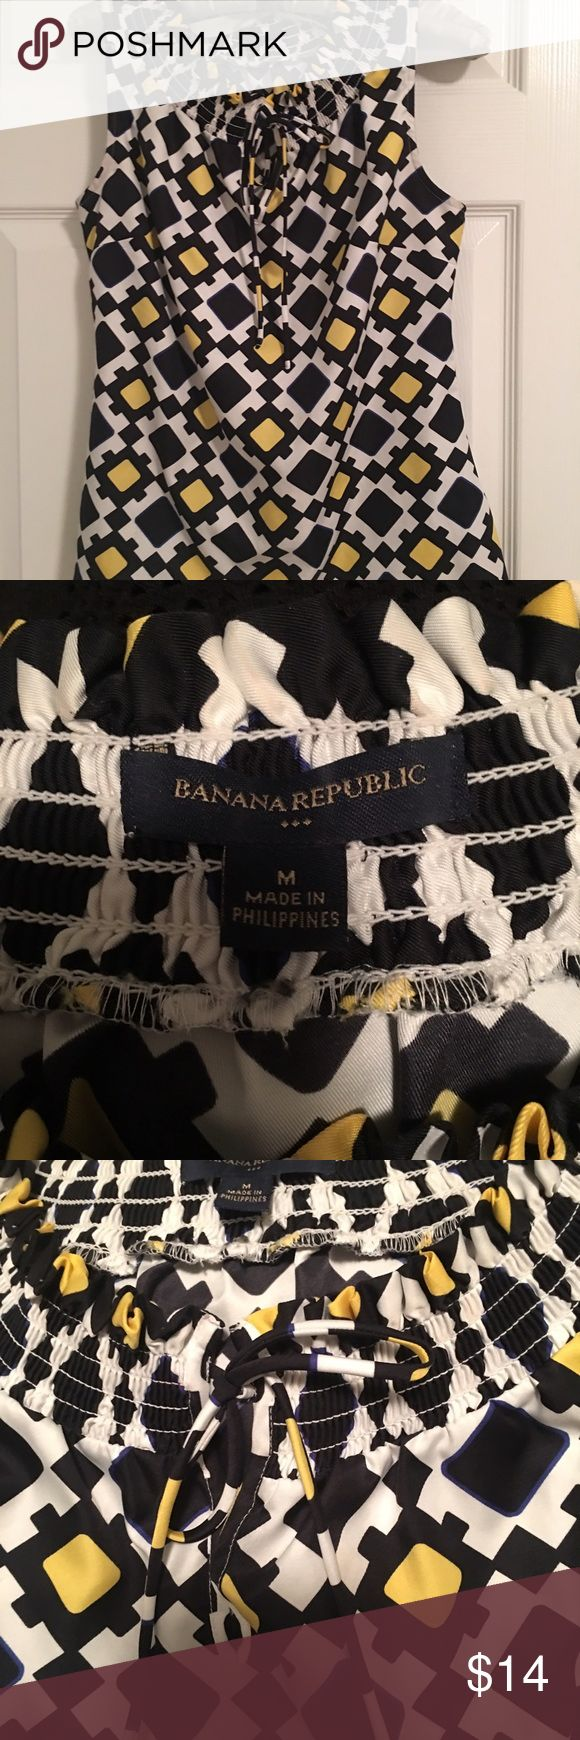 Banana Republic sleeveless top. Size Med. Banana Republic black/yellow print on off white background.  Keyhole front with tie and smocking around neck.  100% polyester...very silky❤️. Excellent condition! Banana Republic Tops Blouses